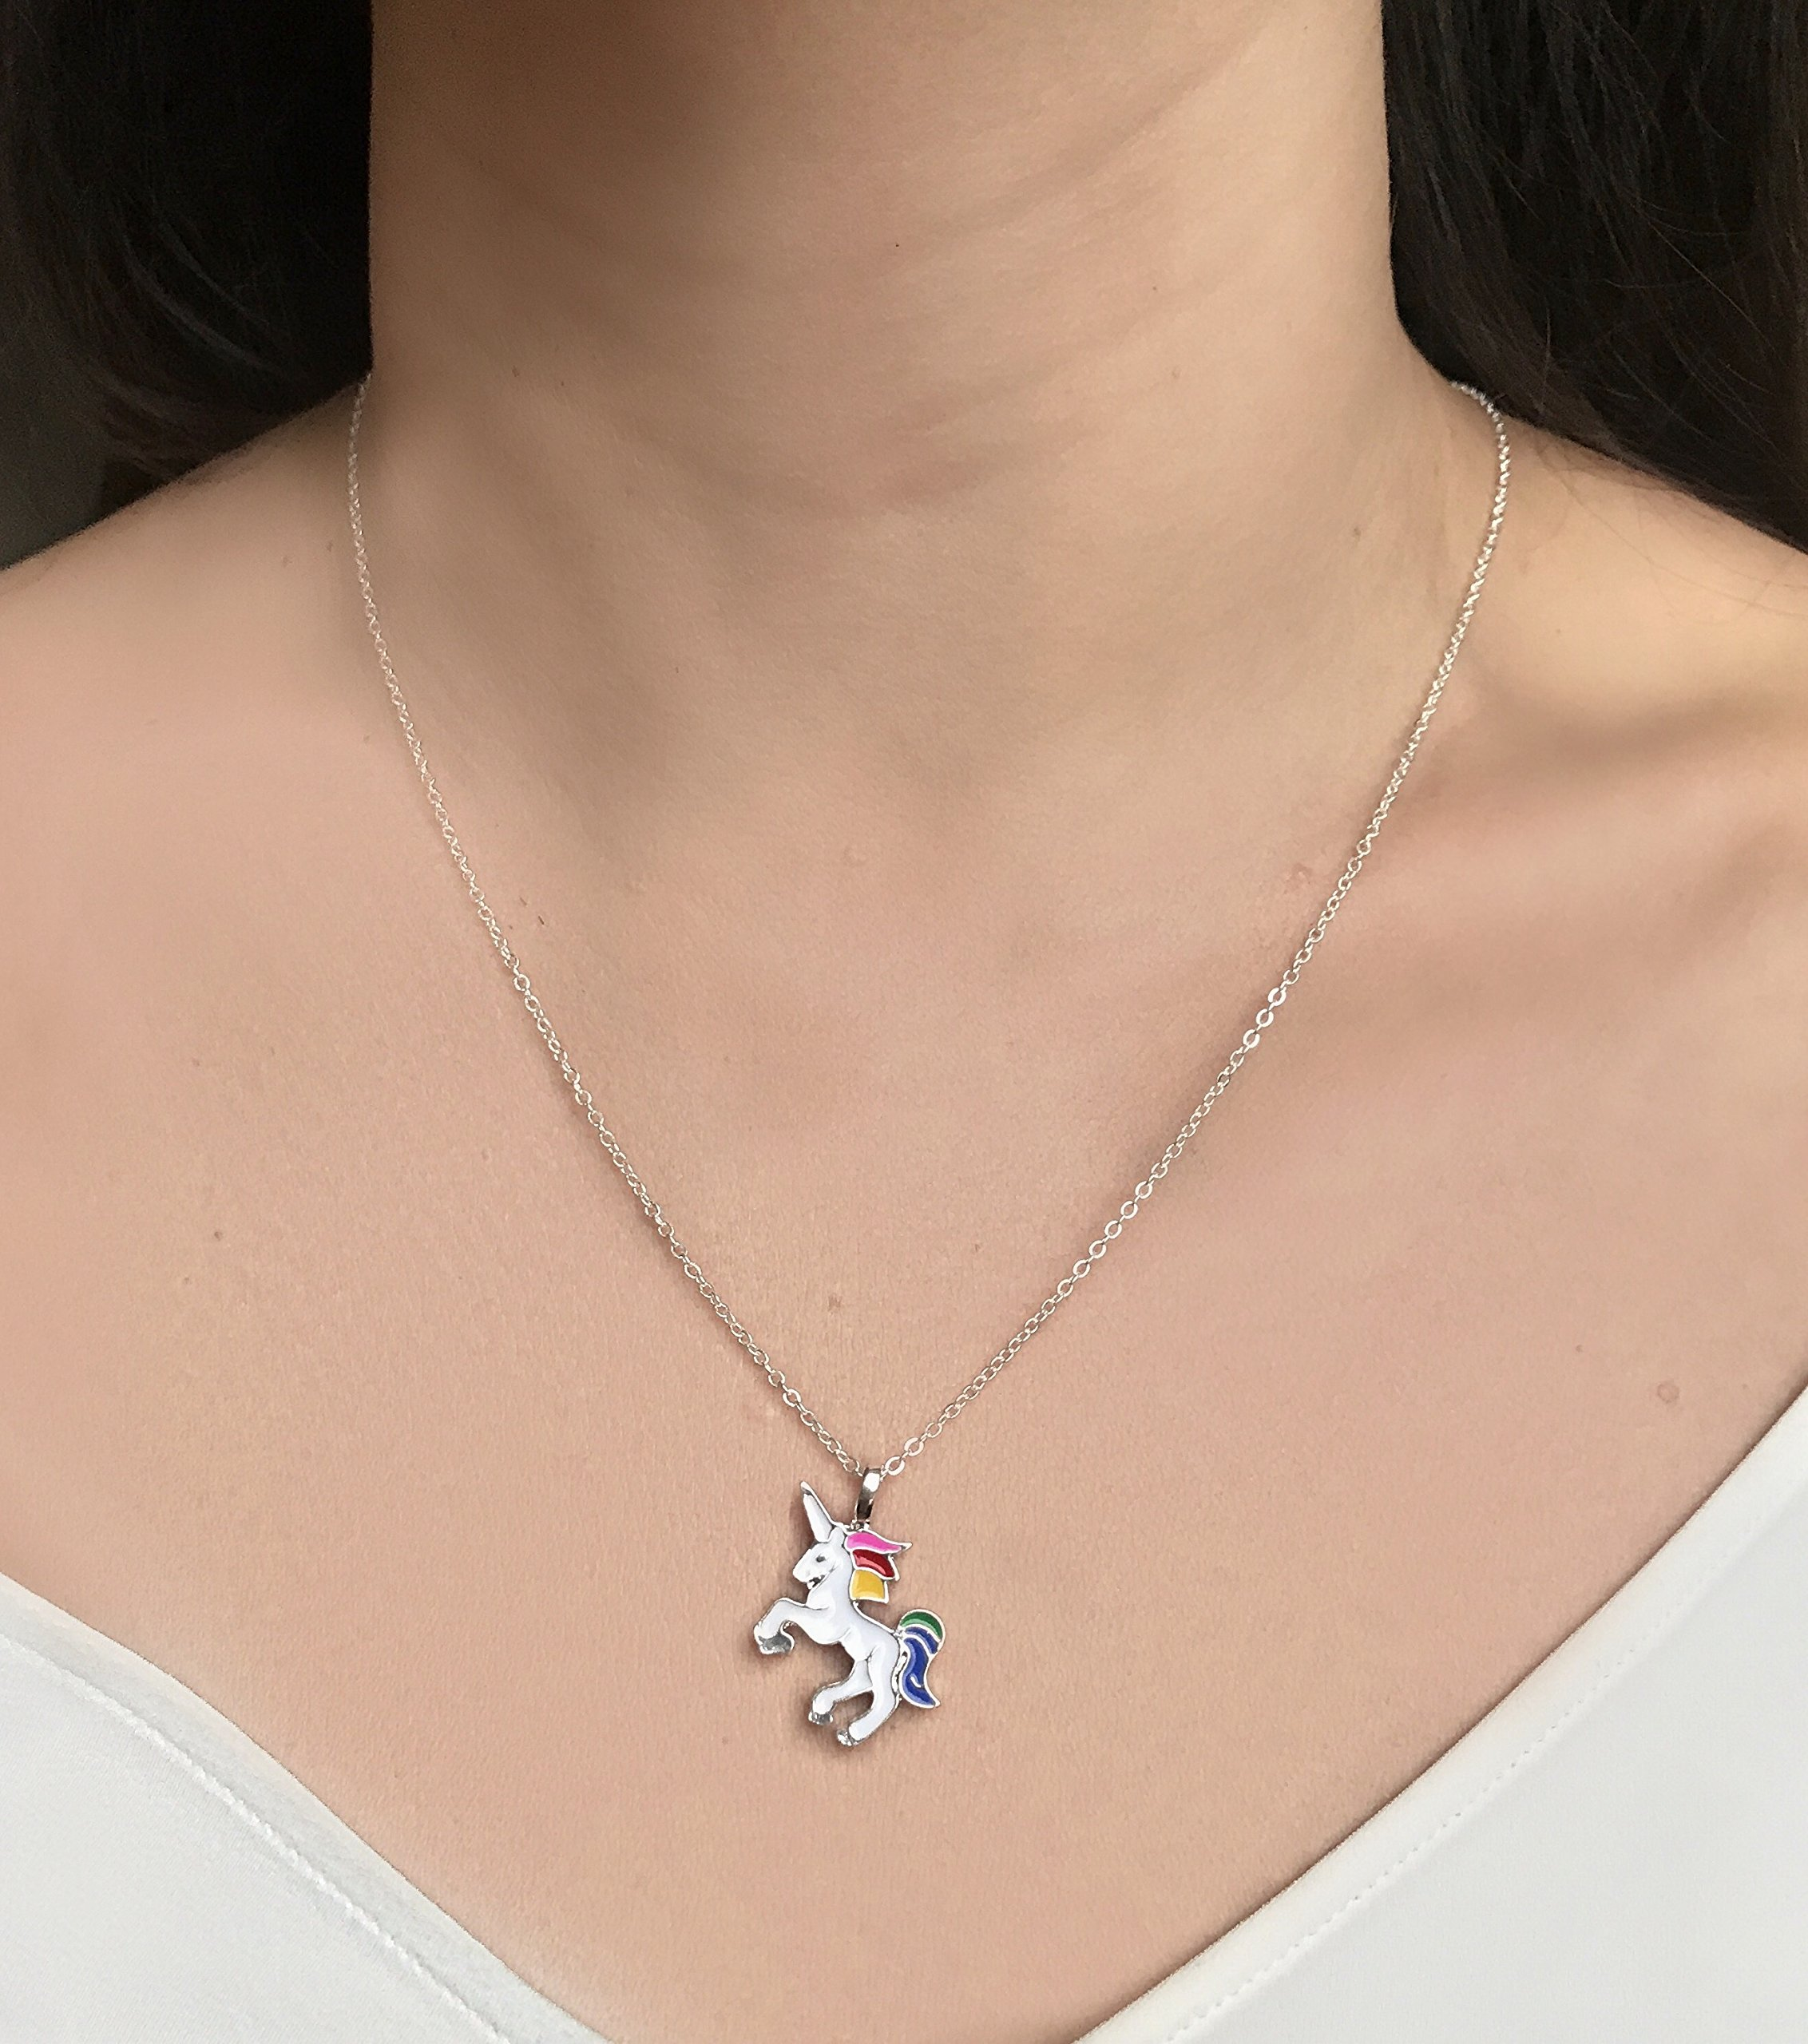 Altitude Boutique Unicorn Necklace Magical Pendant Gift for Girls or for Women Gold Silver Colorful Enamel 9